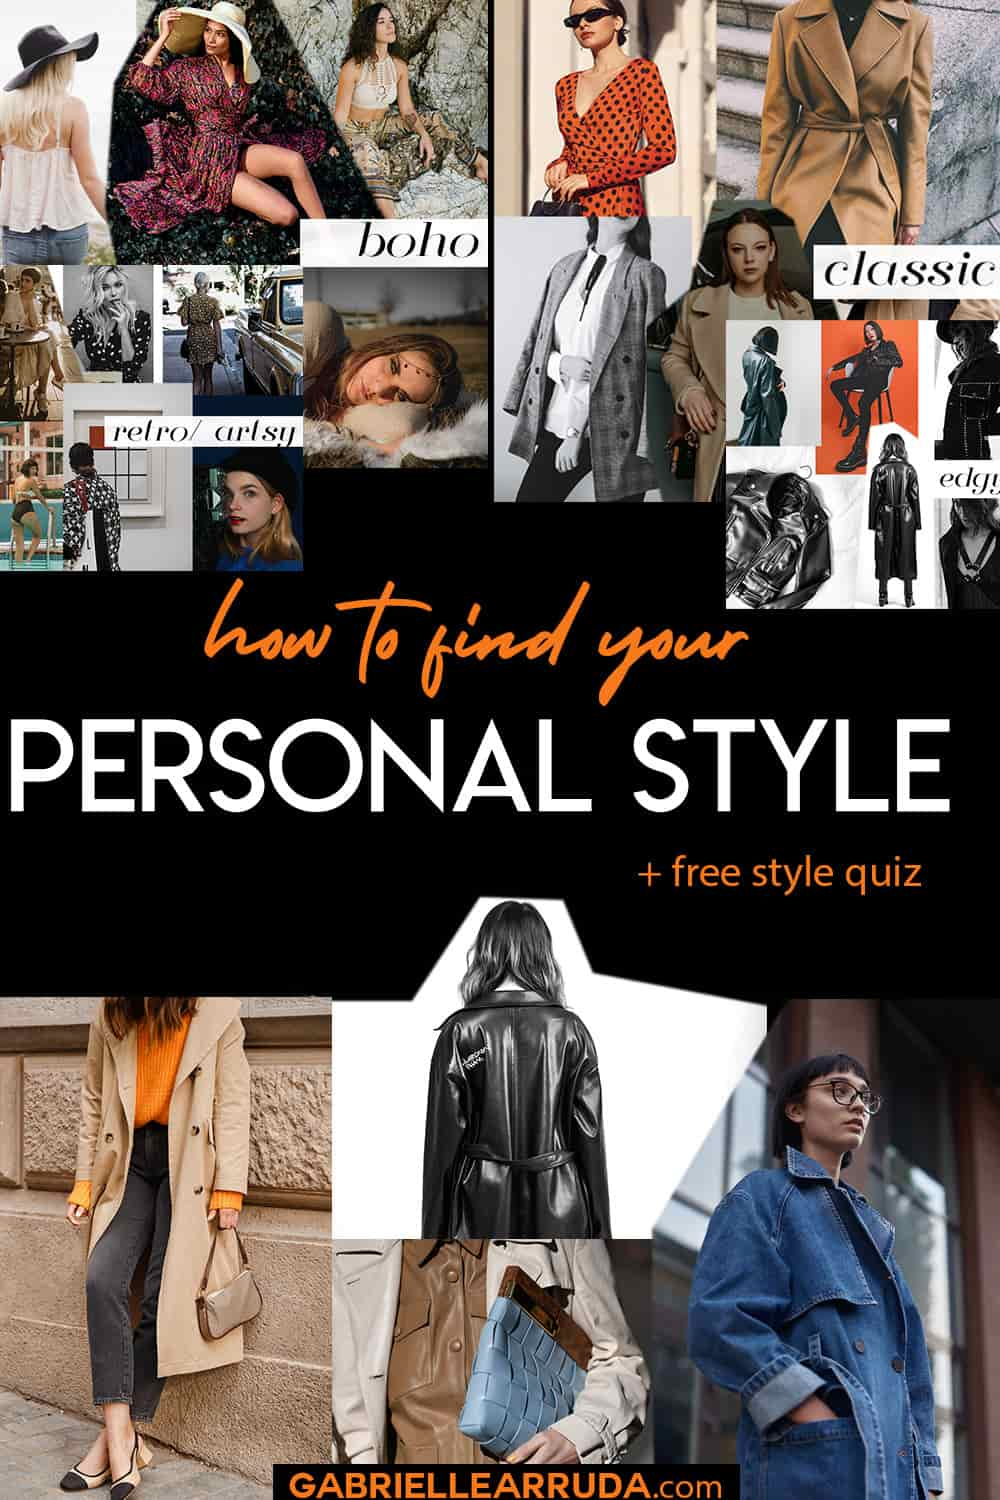 how to find your personal style, images of different fashion styles- classic, boho, trendy, etc with a few fashion inspiration images